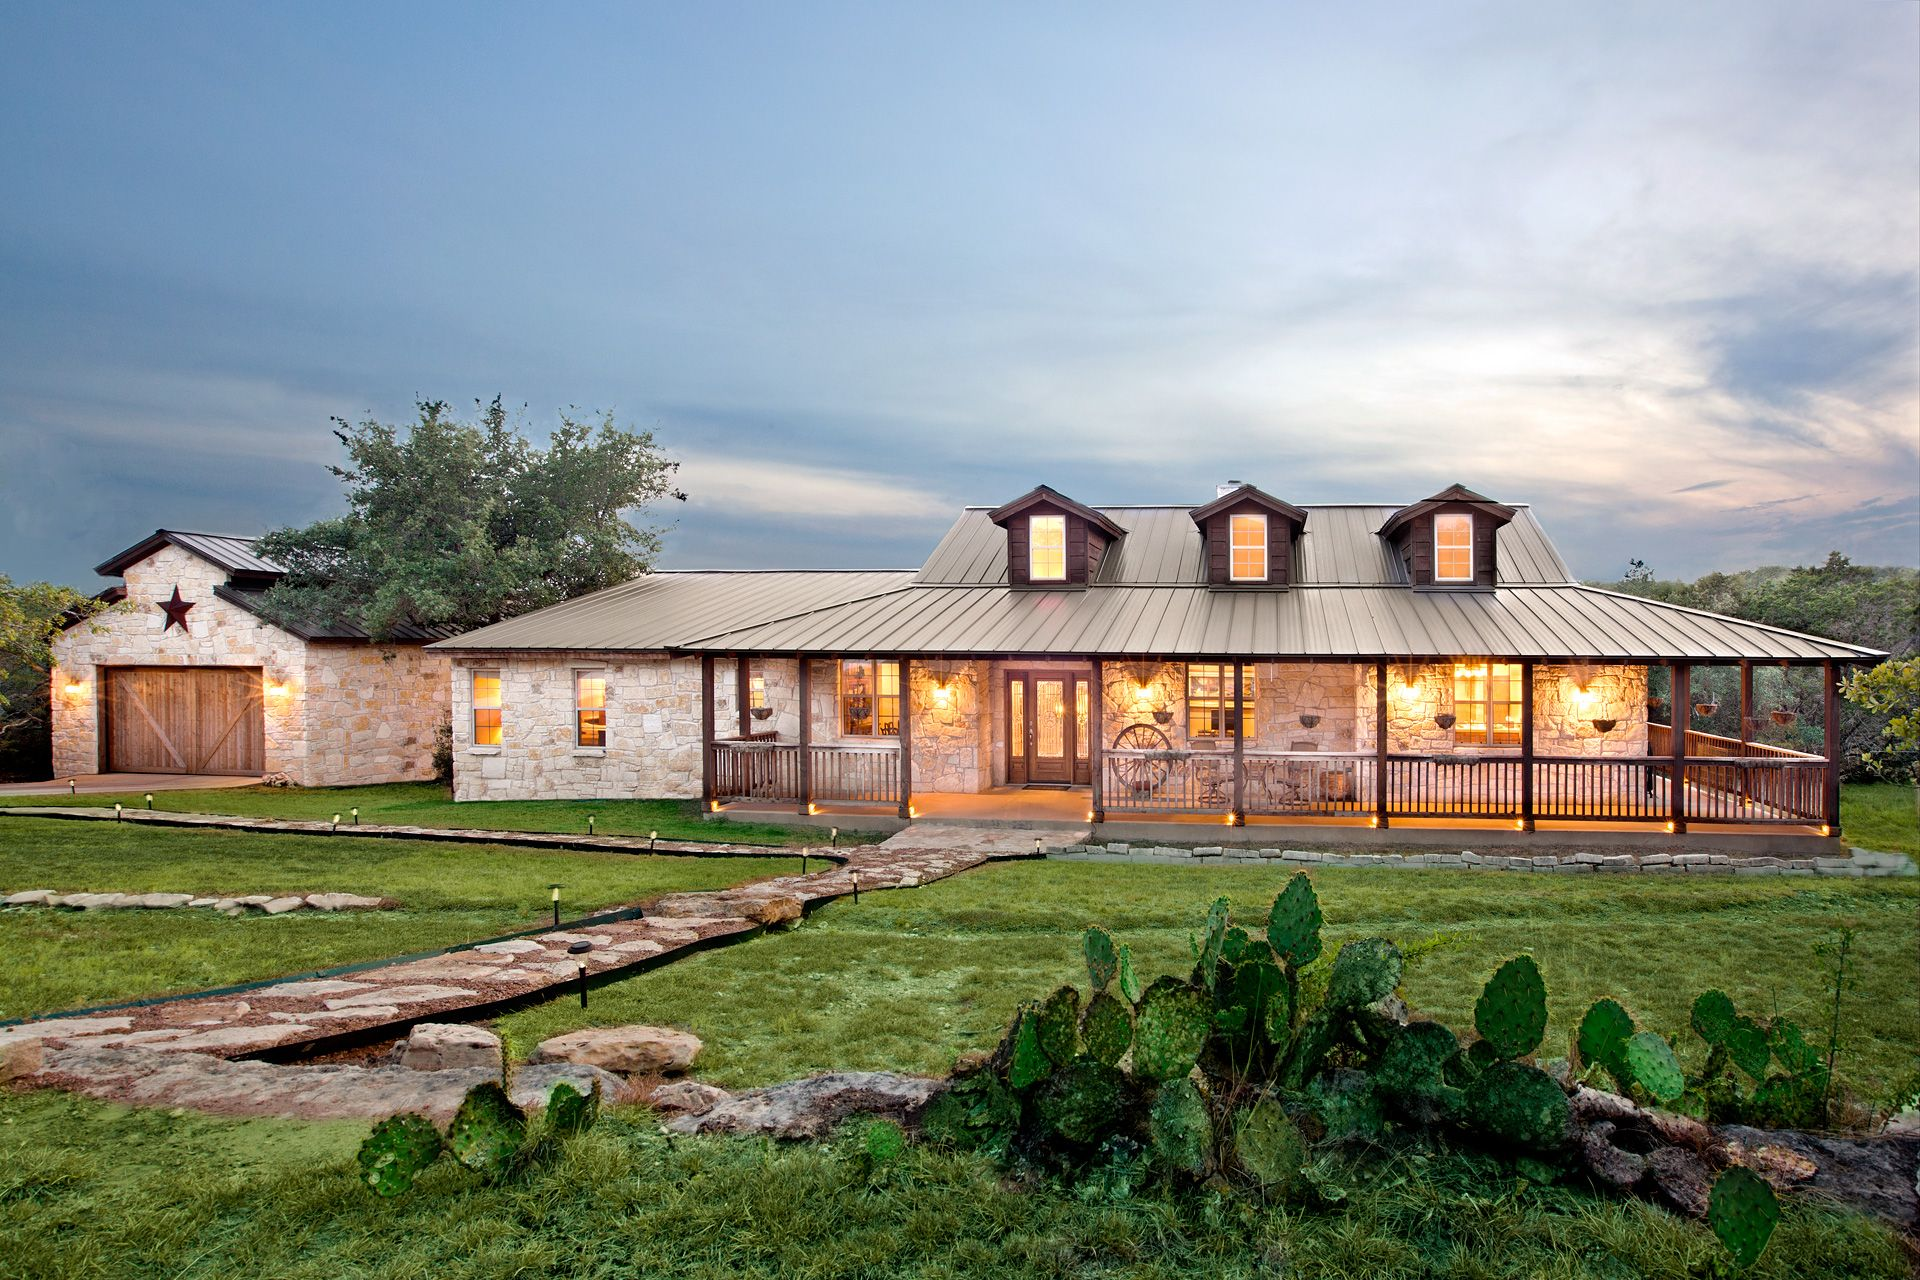 Texas ranch style home in austin tx is part of my dream to have